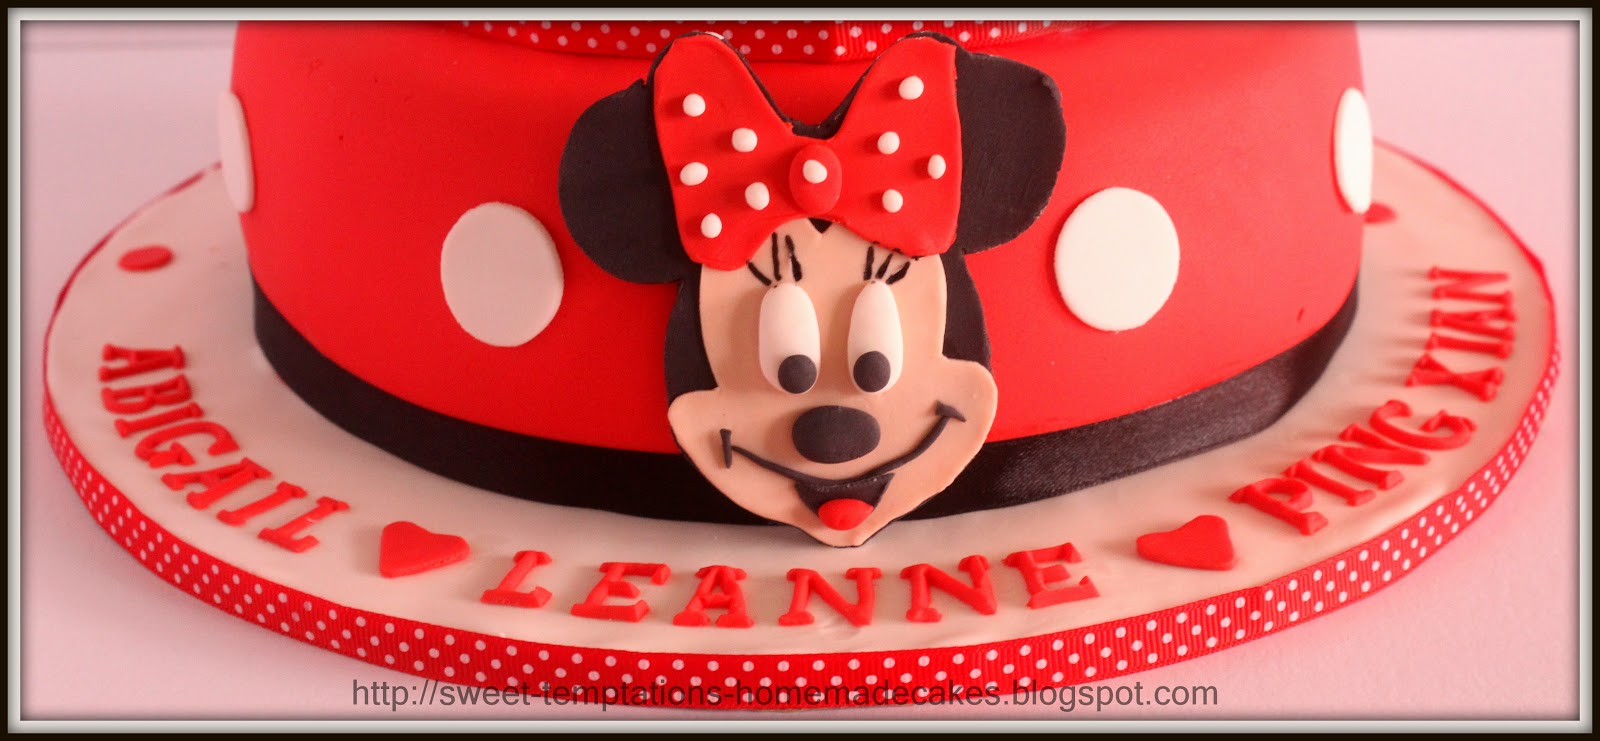 Sweet Temptations Homemade Cakes Pastry 2 Tier Minnie Mouse Cake